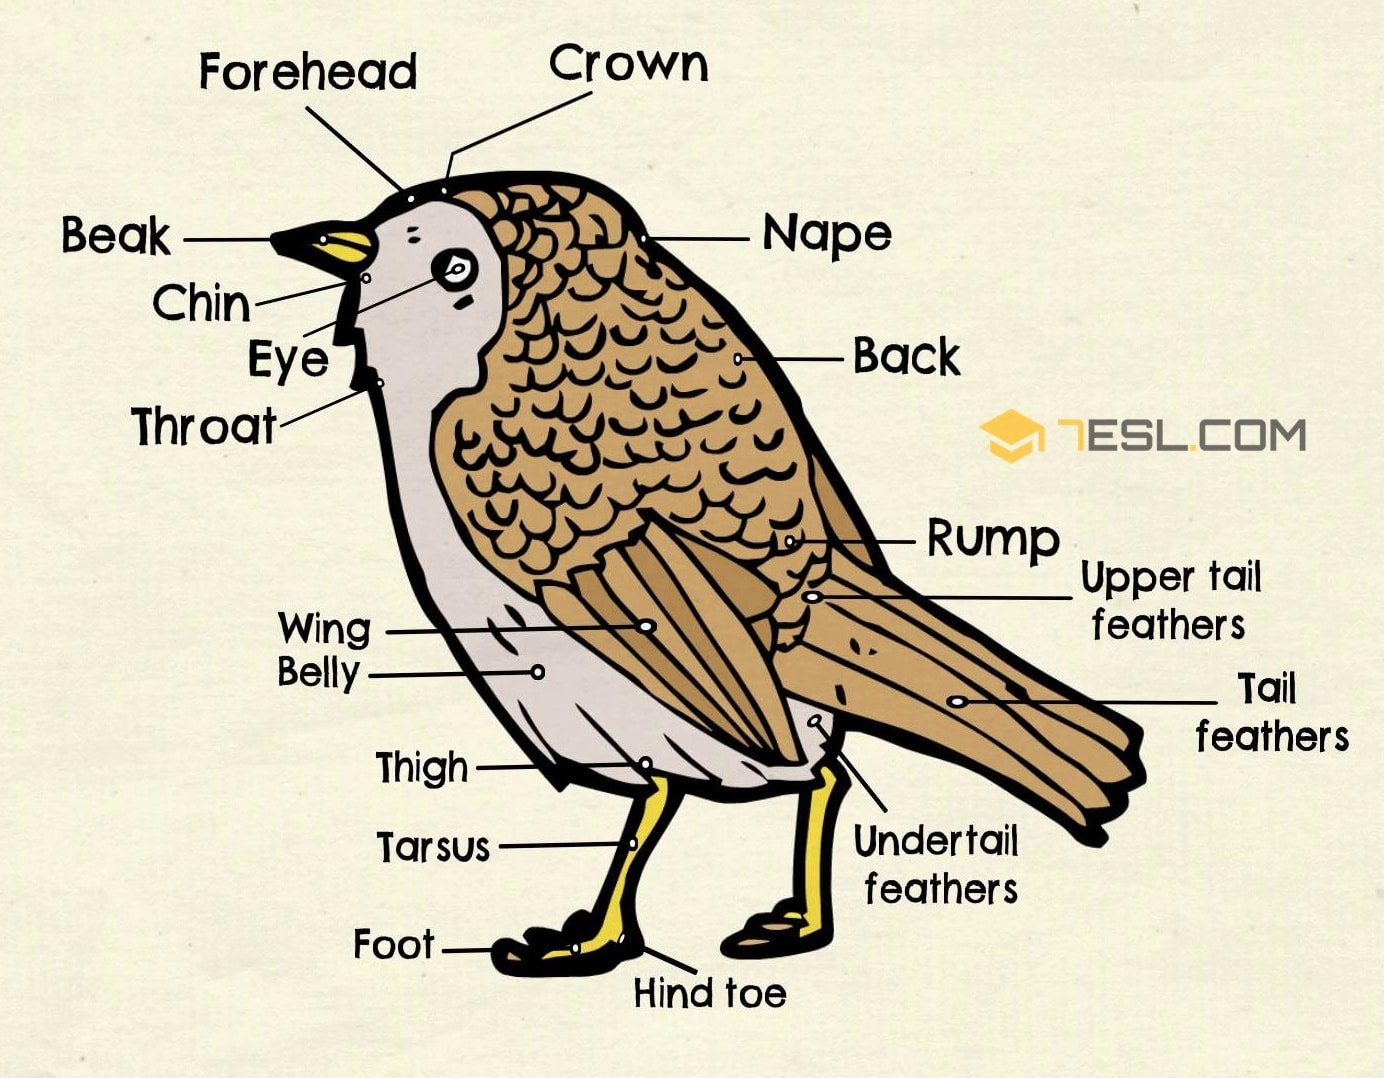 Different Parts of a Bird in English | Bird Anatomy - 7 E S L